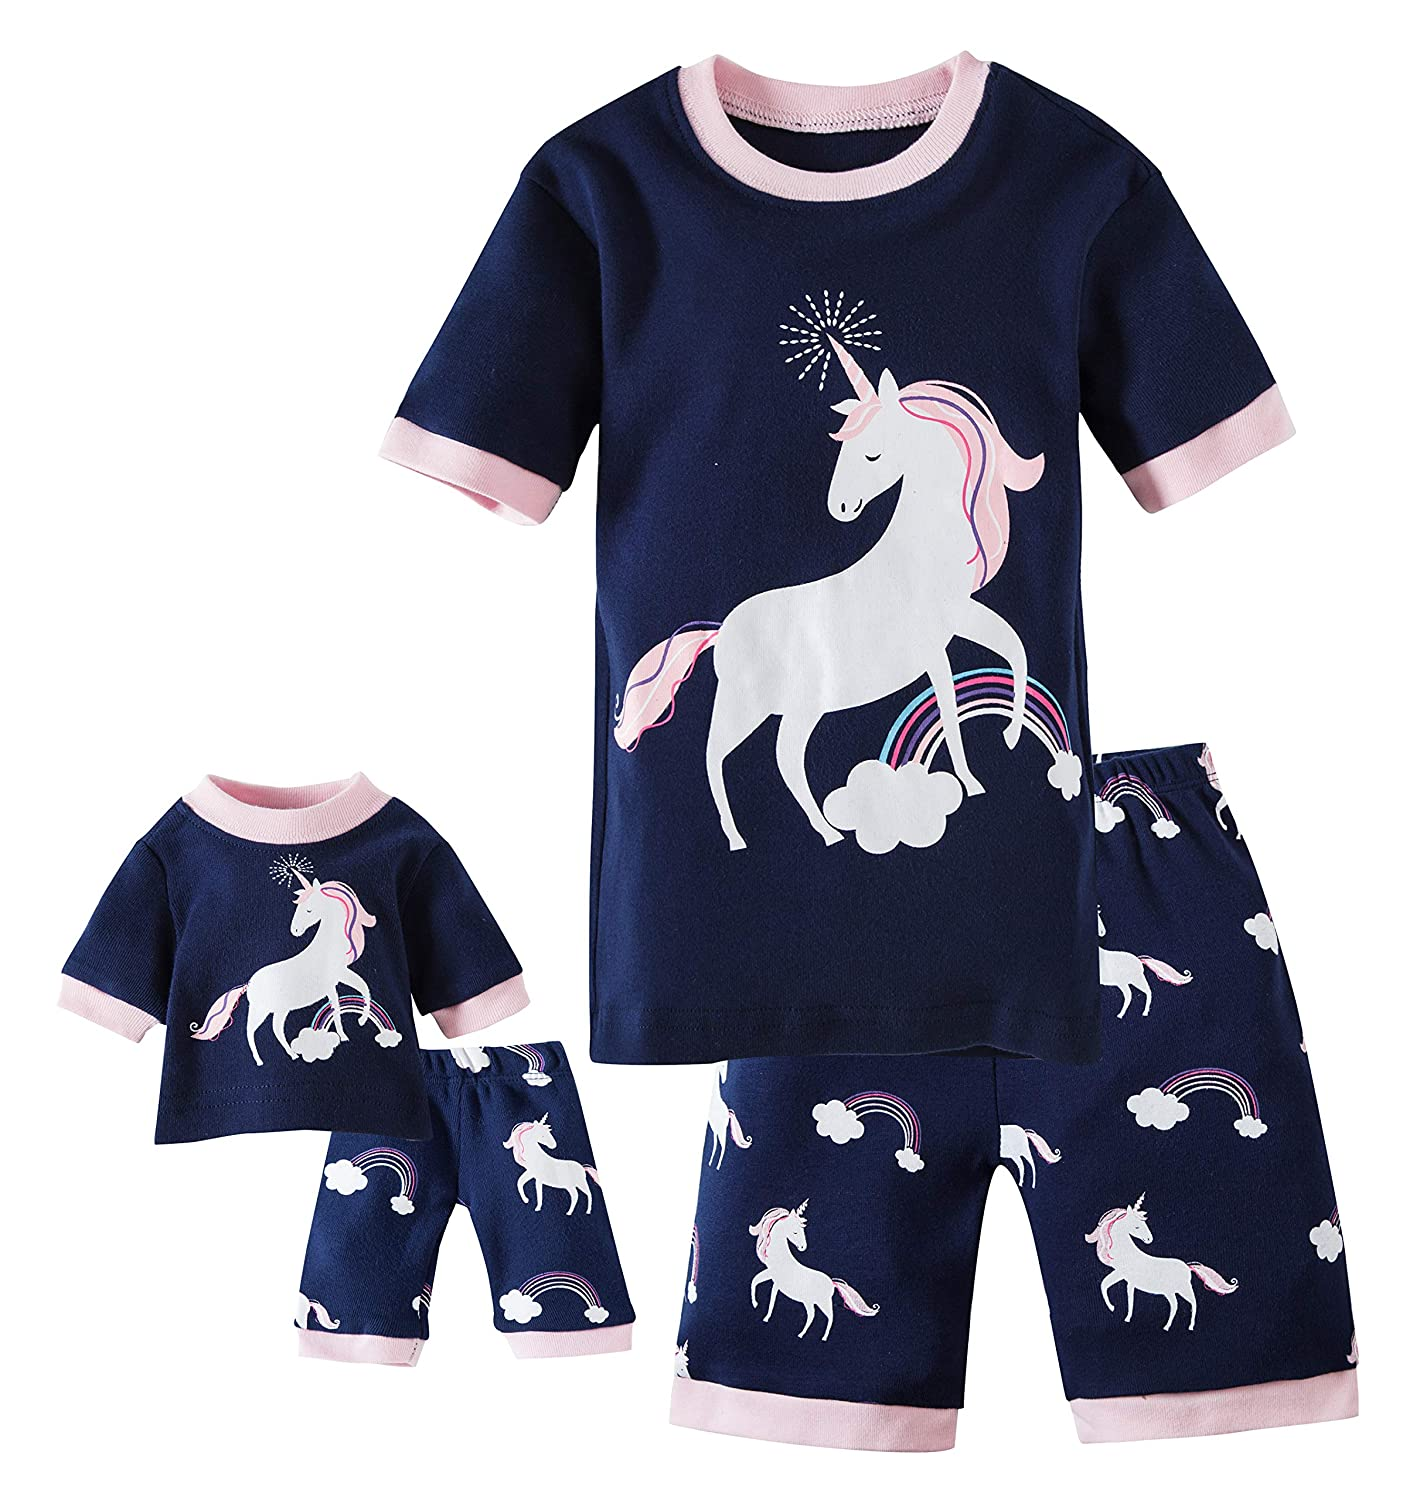 dbf55c54ae Amazon.com  Babypajama Deer Little Girls  Pajamas Set 100% Cotton Clothes   Clothing